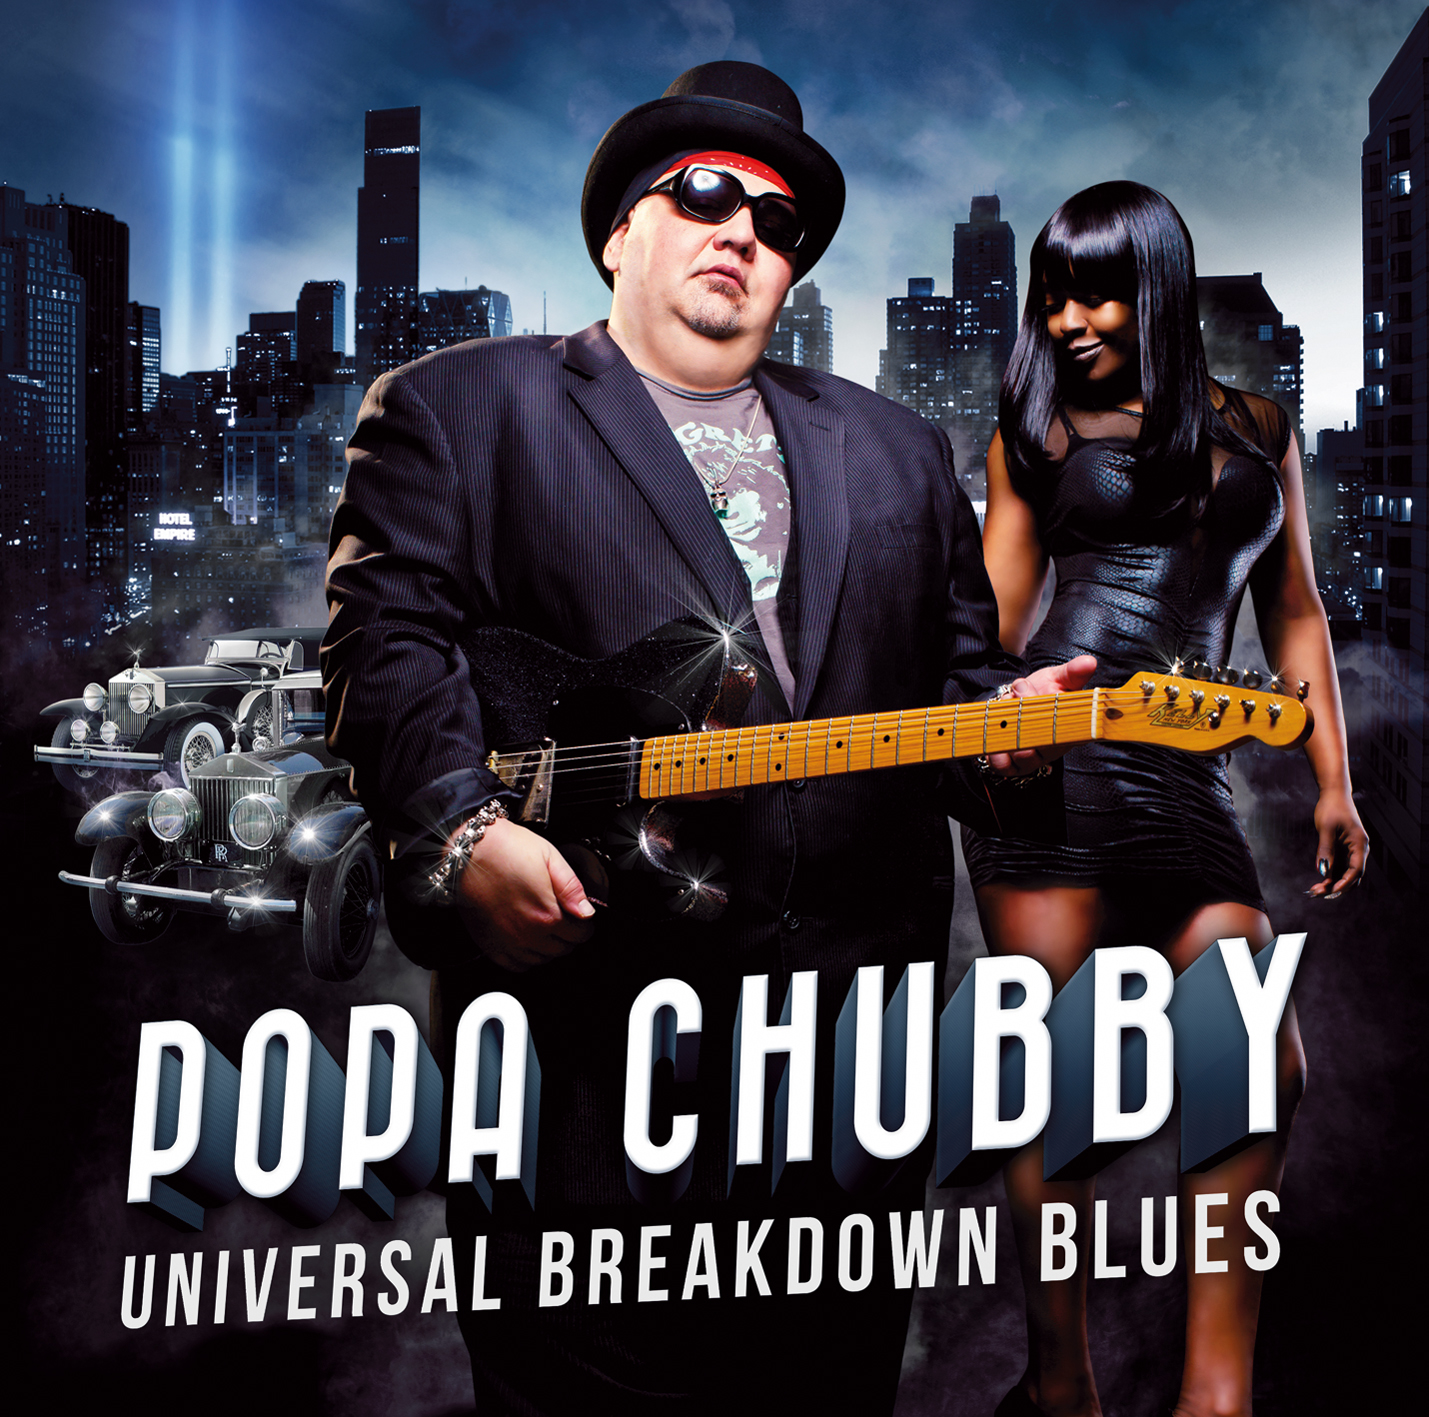 Poppa chubby low down and dirty